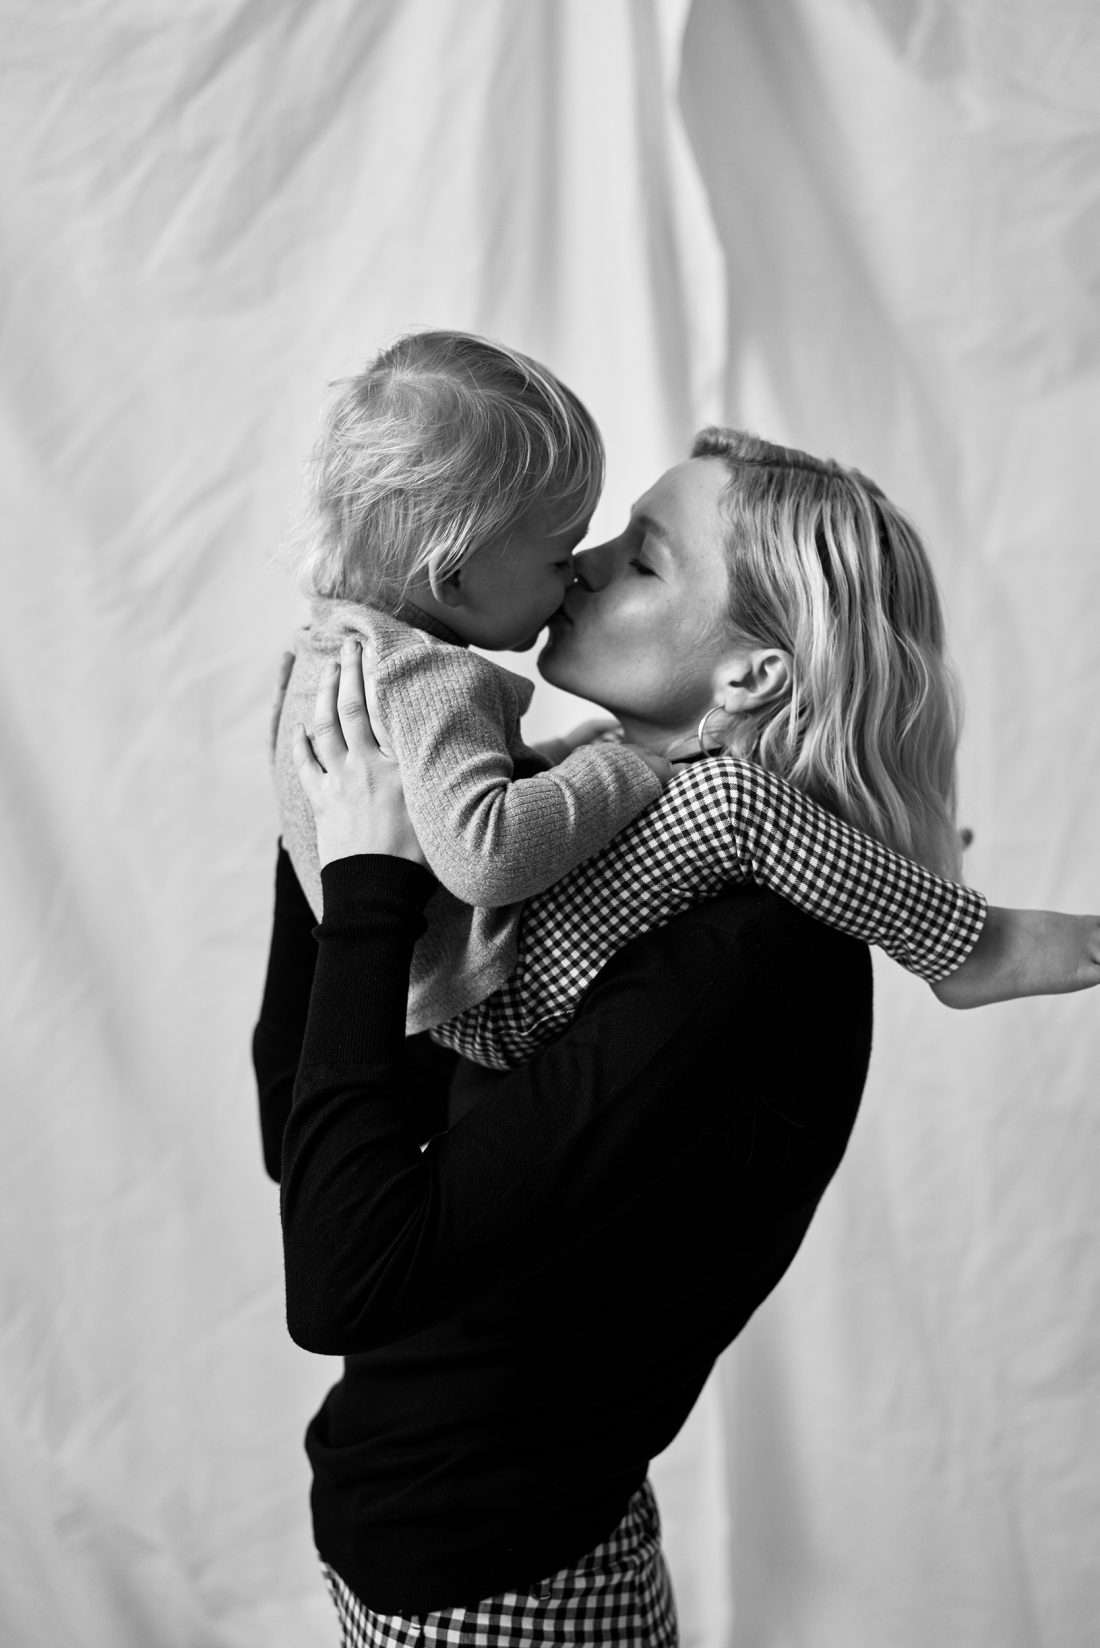 Veronika & Luca photographed by Charles Howells for Sauce Magazine